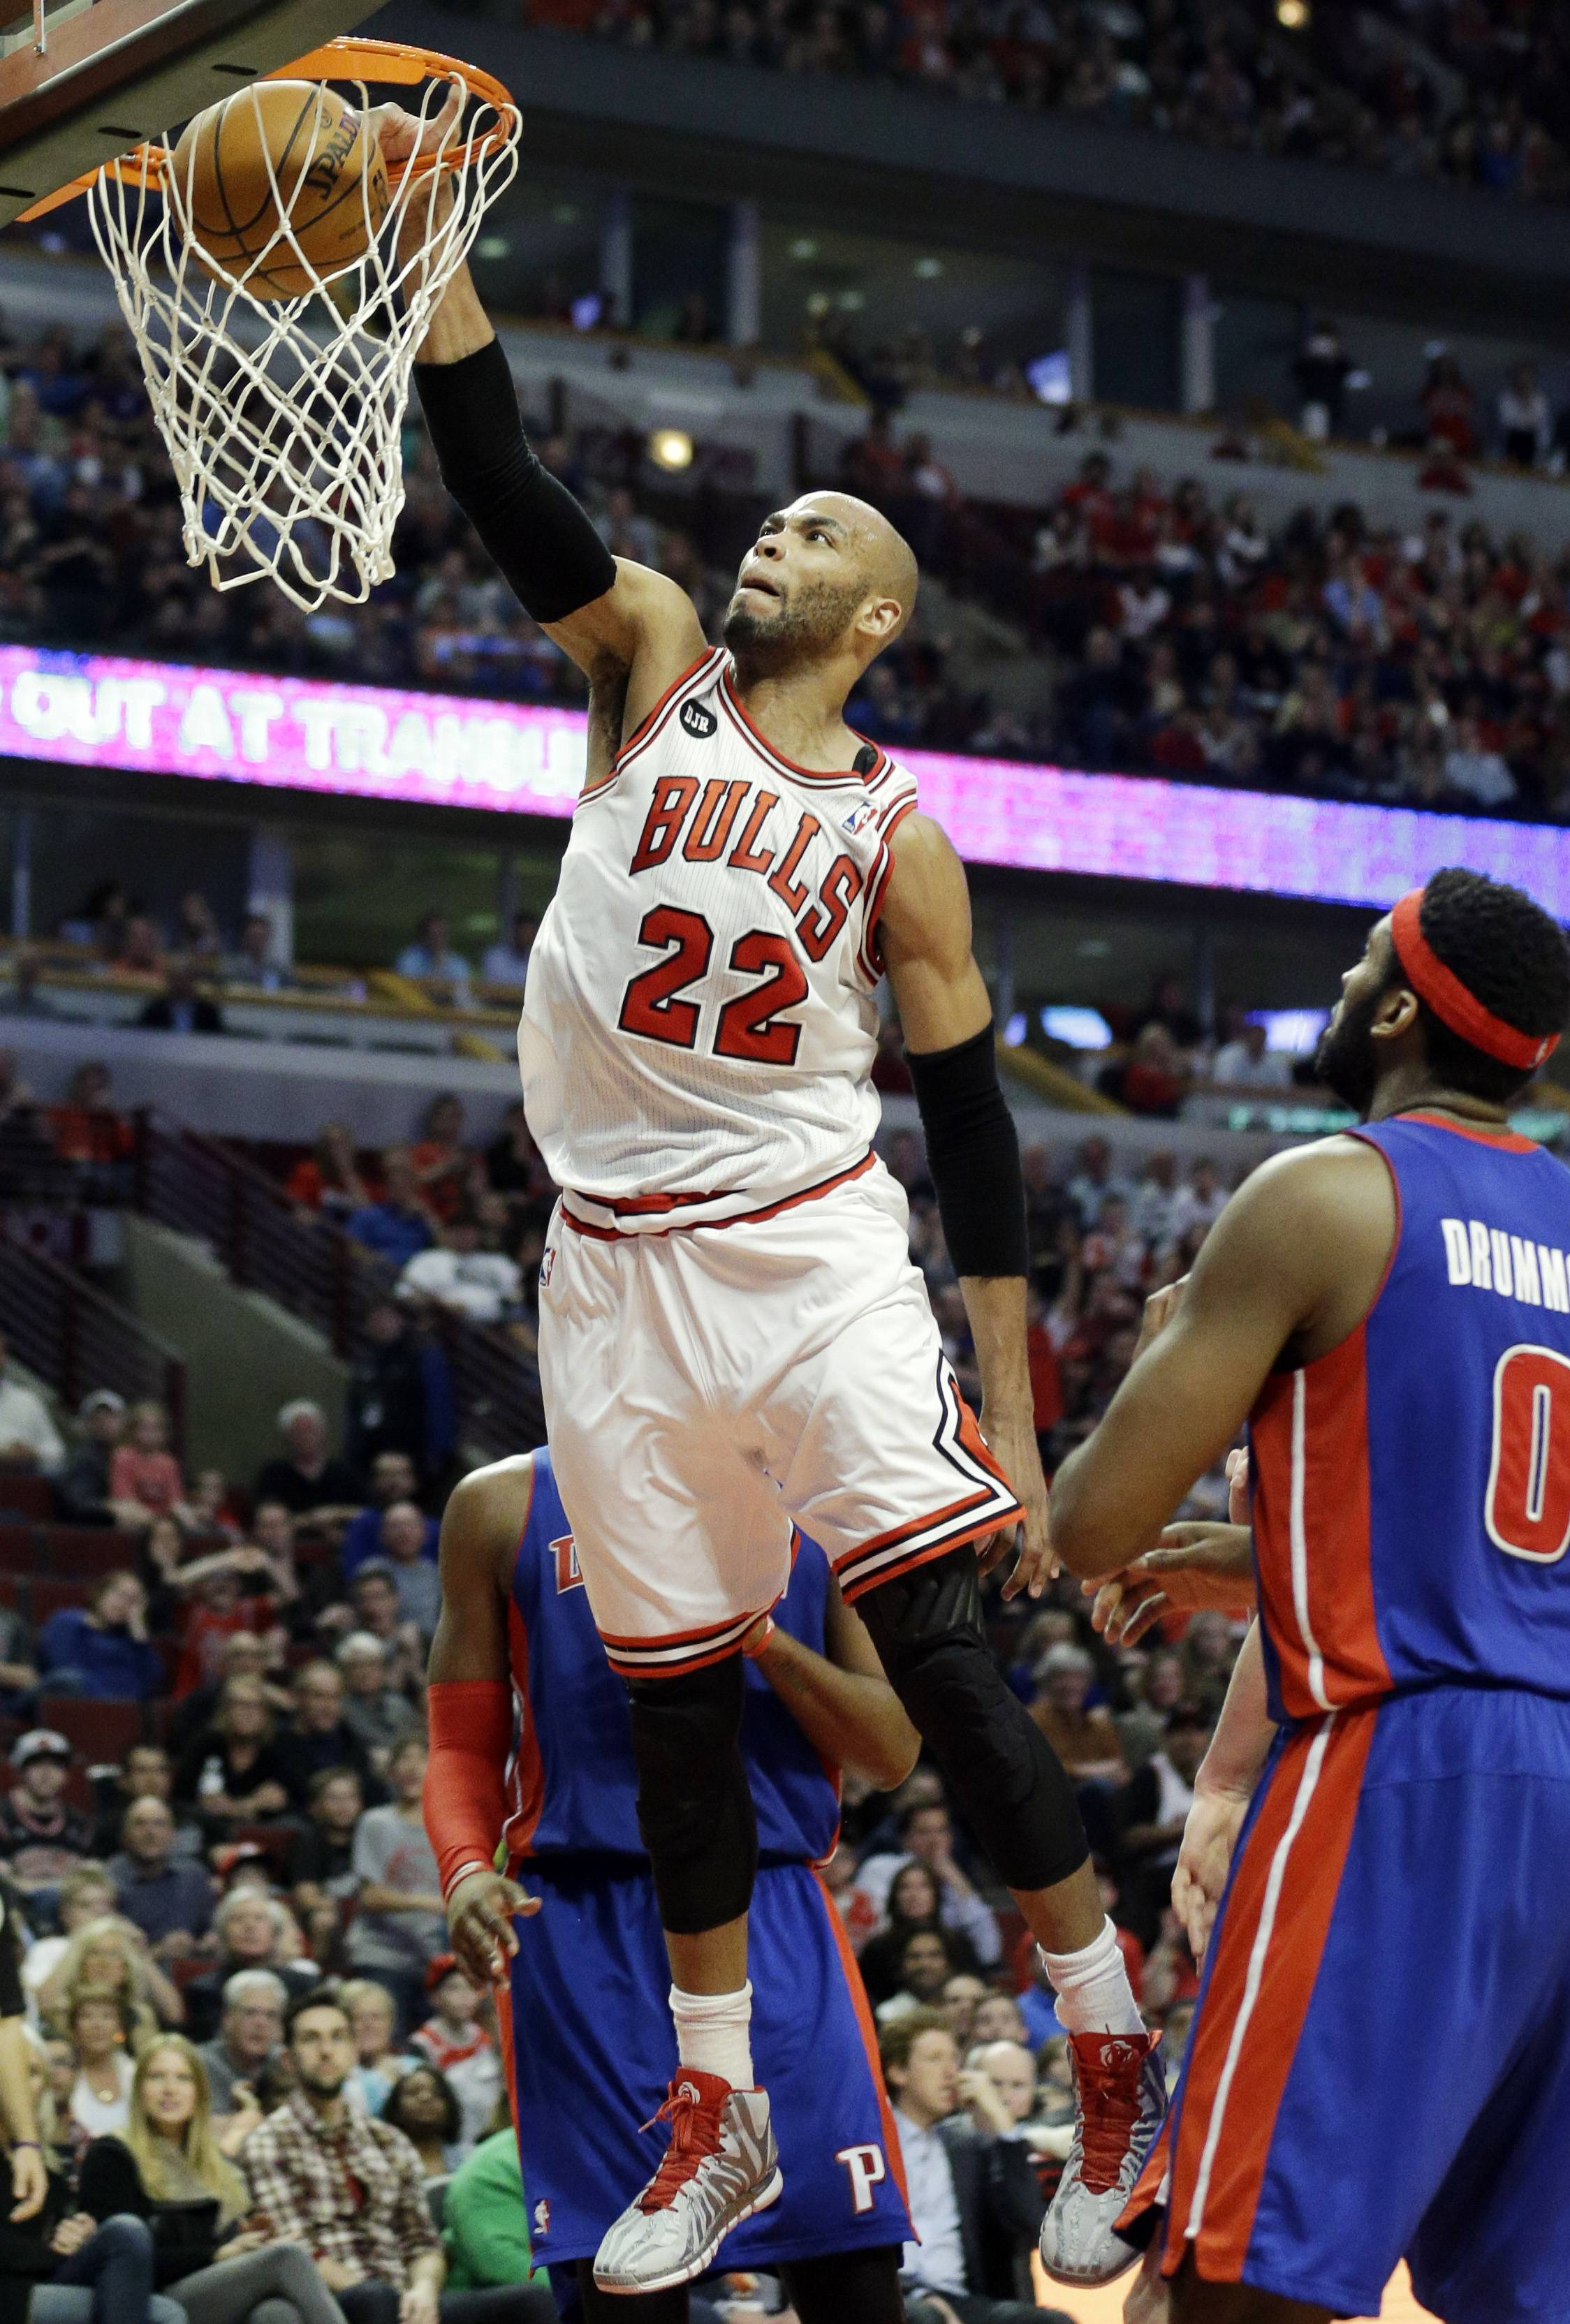 Chicago Bulls forward Taj Gibson (22) dunks against the during the second half of an NBA basketball game against the Detroit Pistons in Chicago on Friday, April 11, 2014. The Bulls won 106-98.